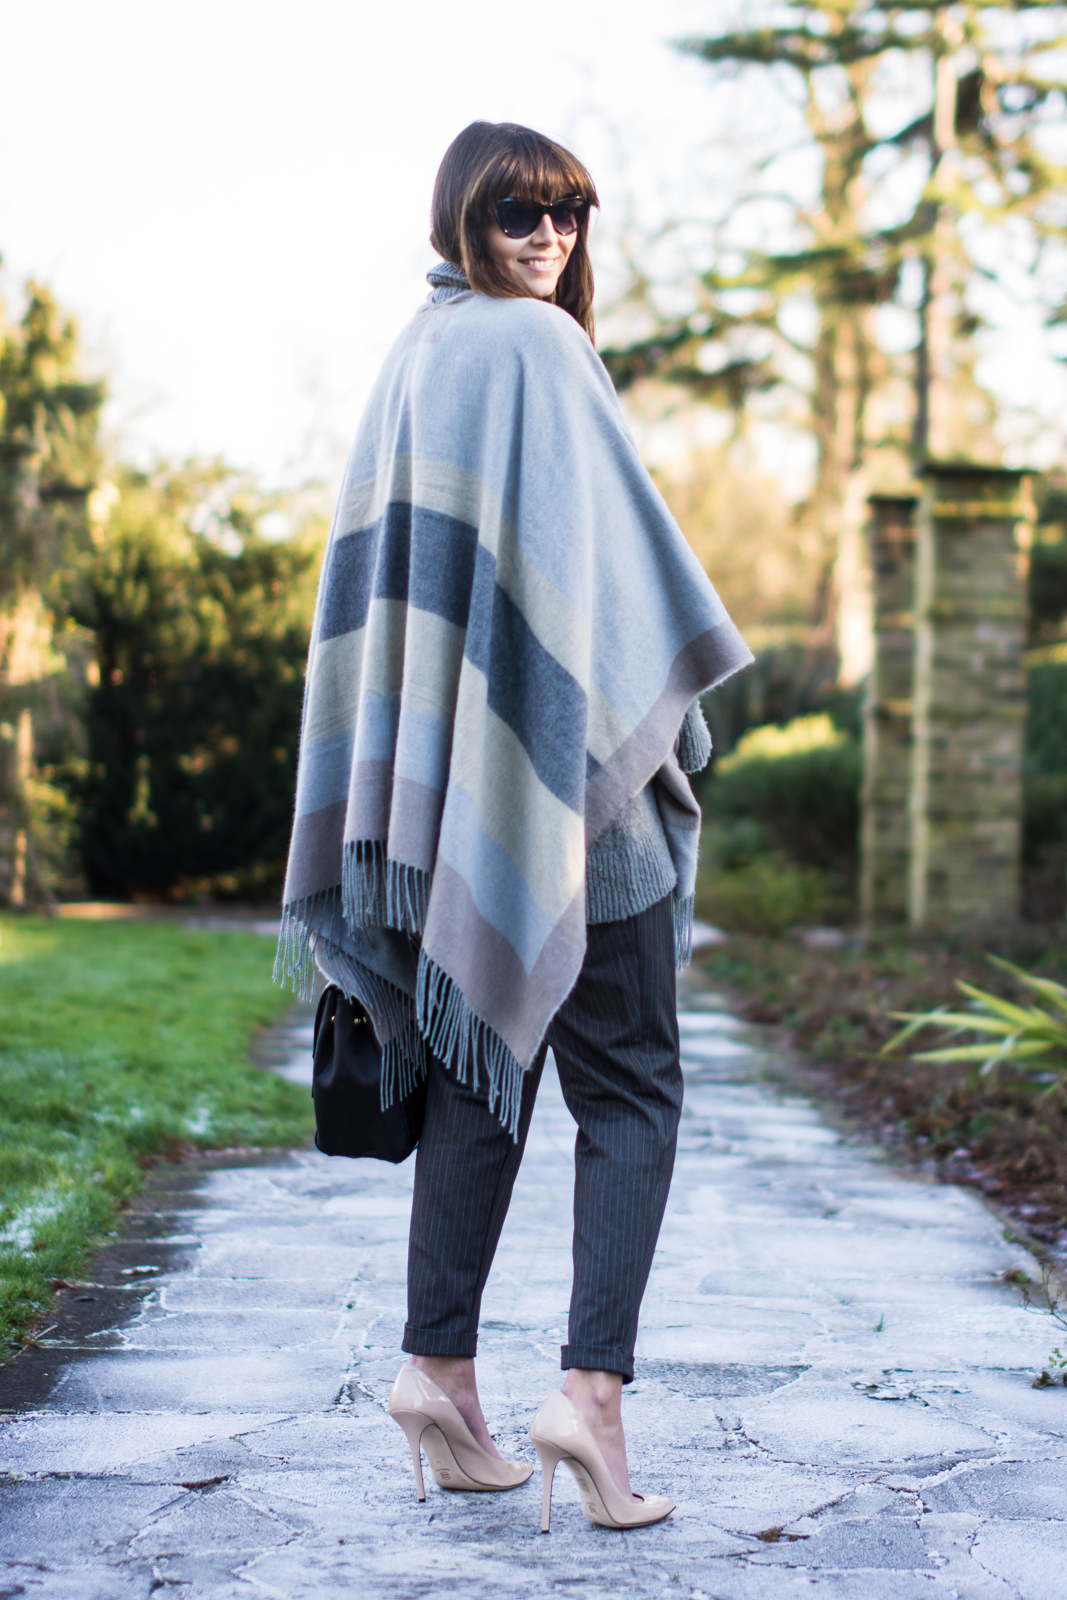 EJSTYLE - River Island Grey Blanket Cape, Nude Daniel Footwear heels, pinstripe forever 21 trousers, OOTD, Winter outfit